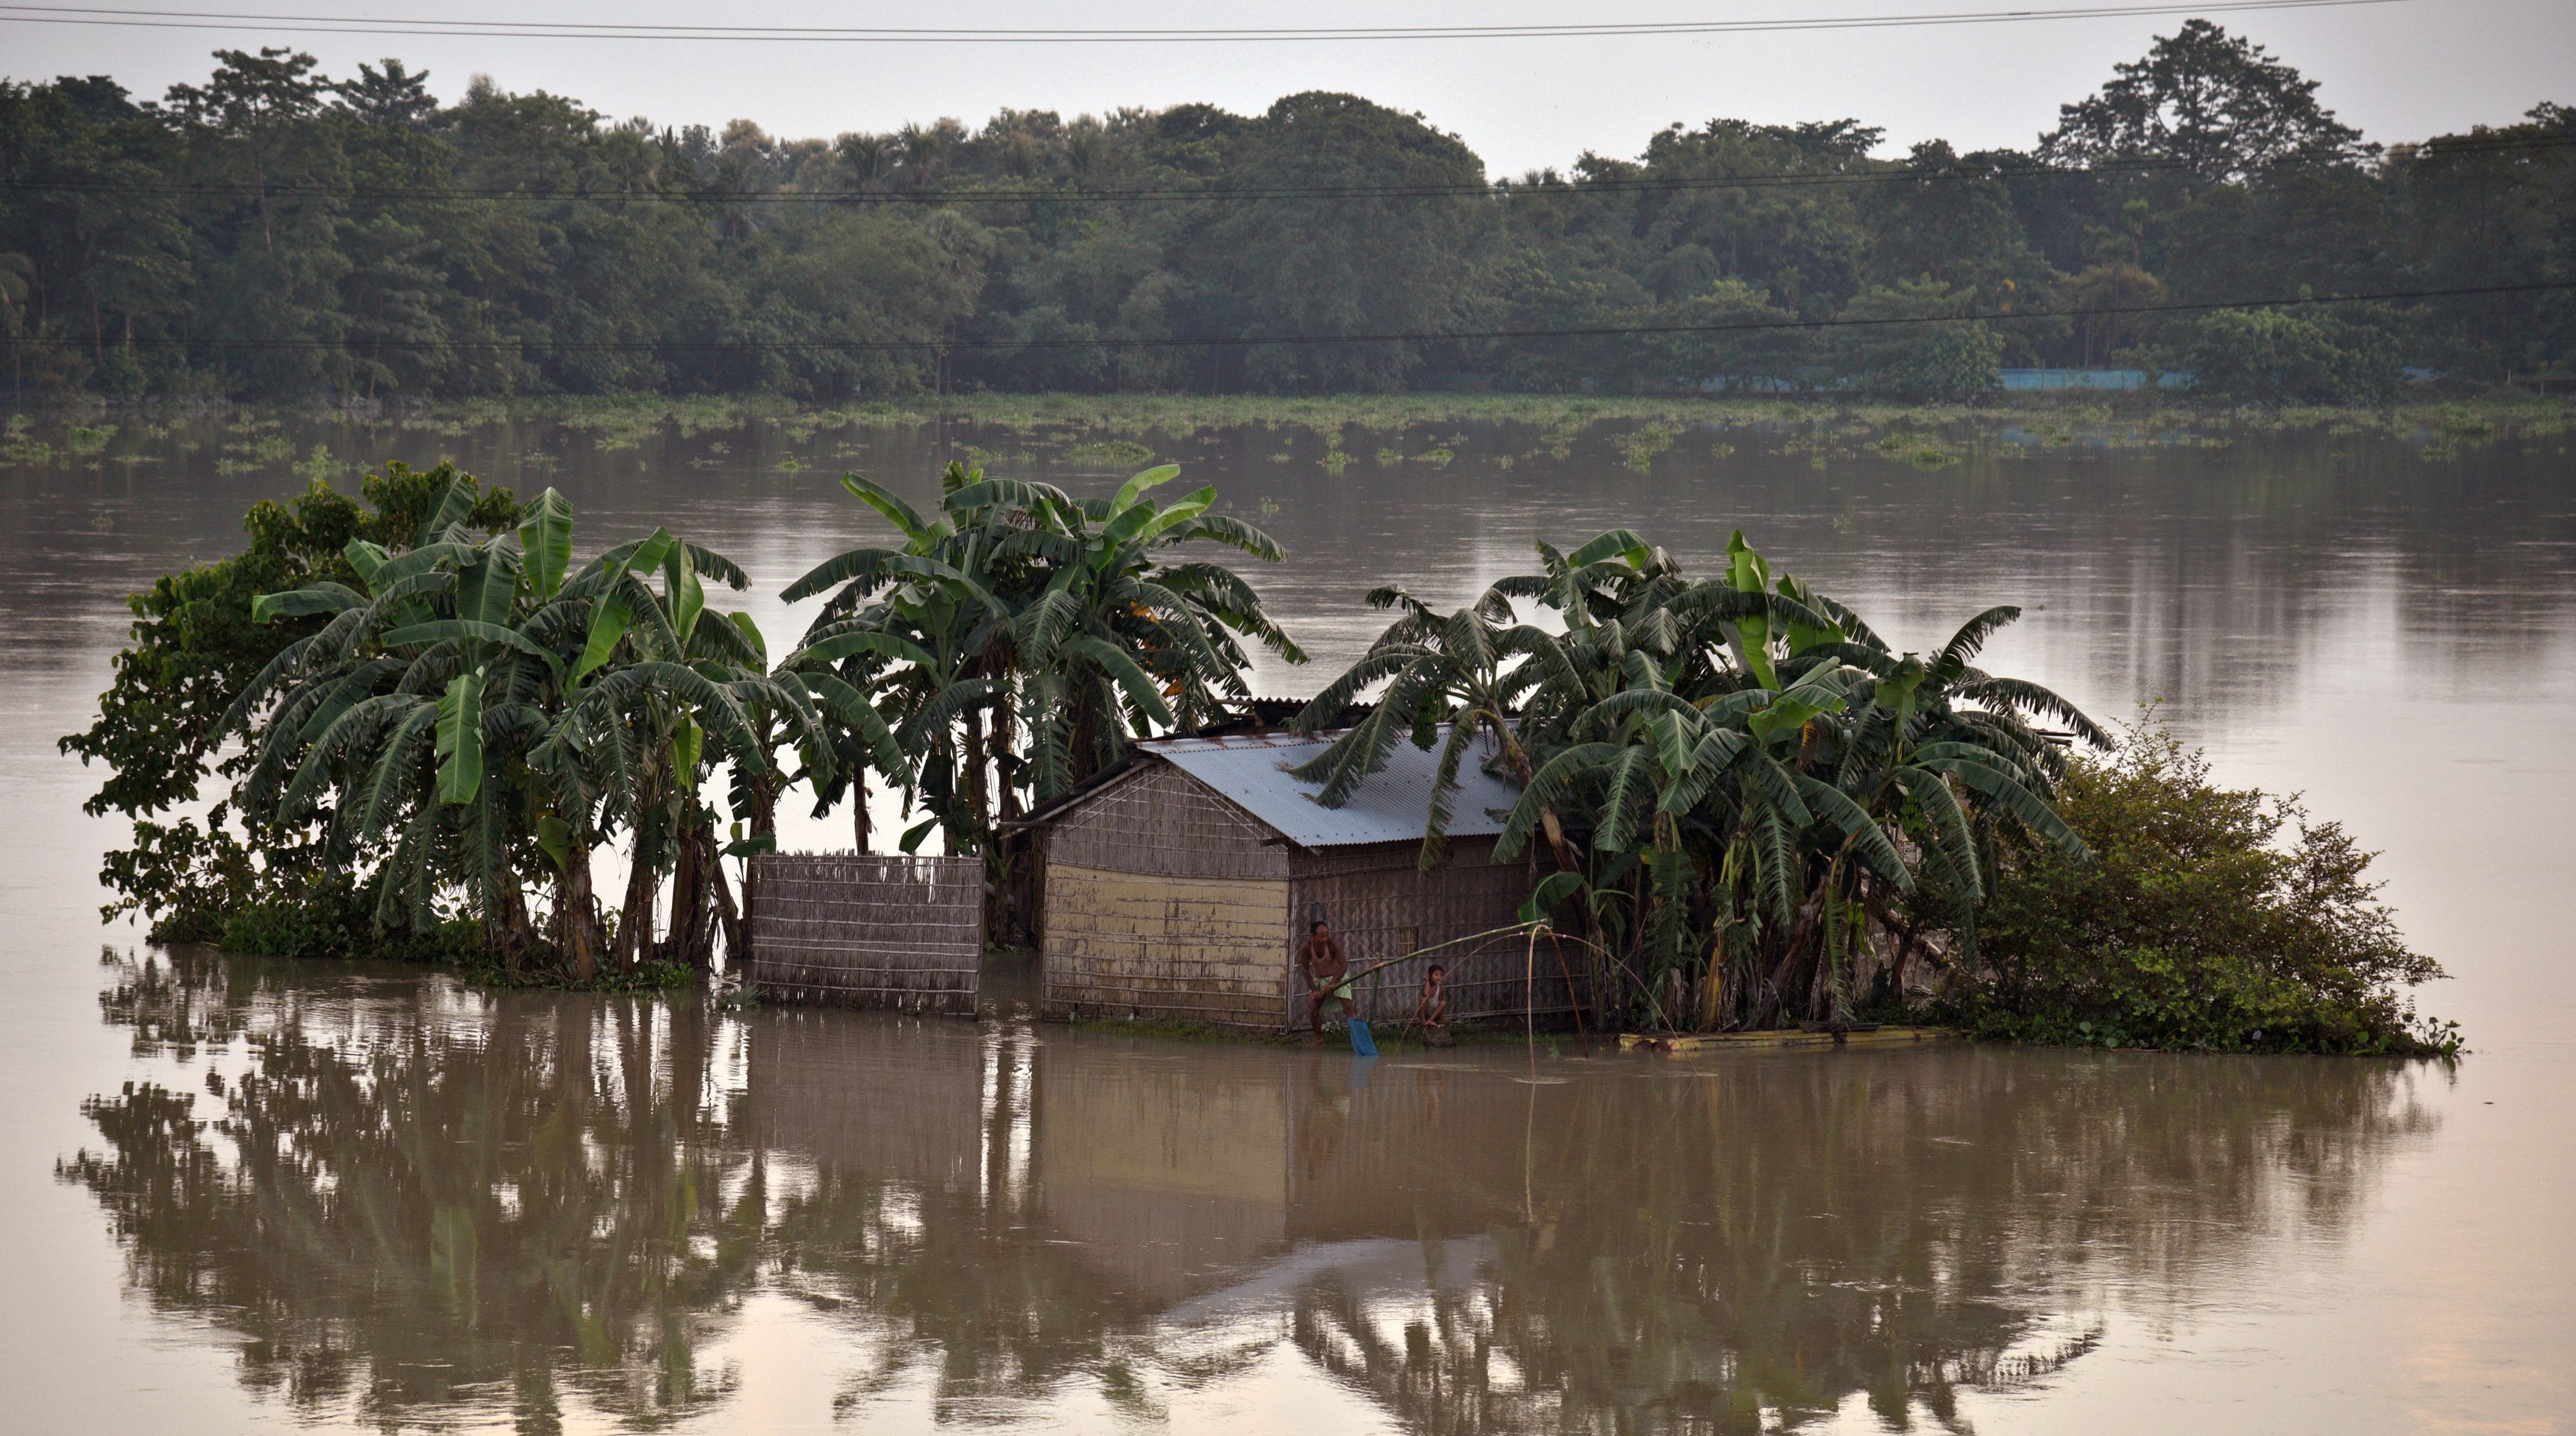 A man casts his fishing net in the flood waters next to his partially submerged hut in Morigaon district